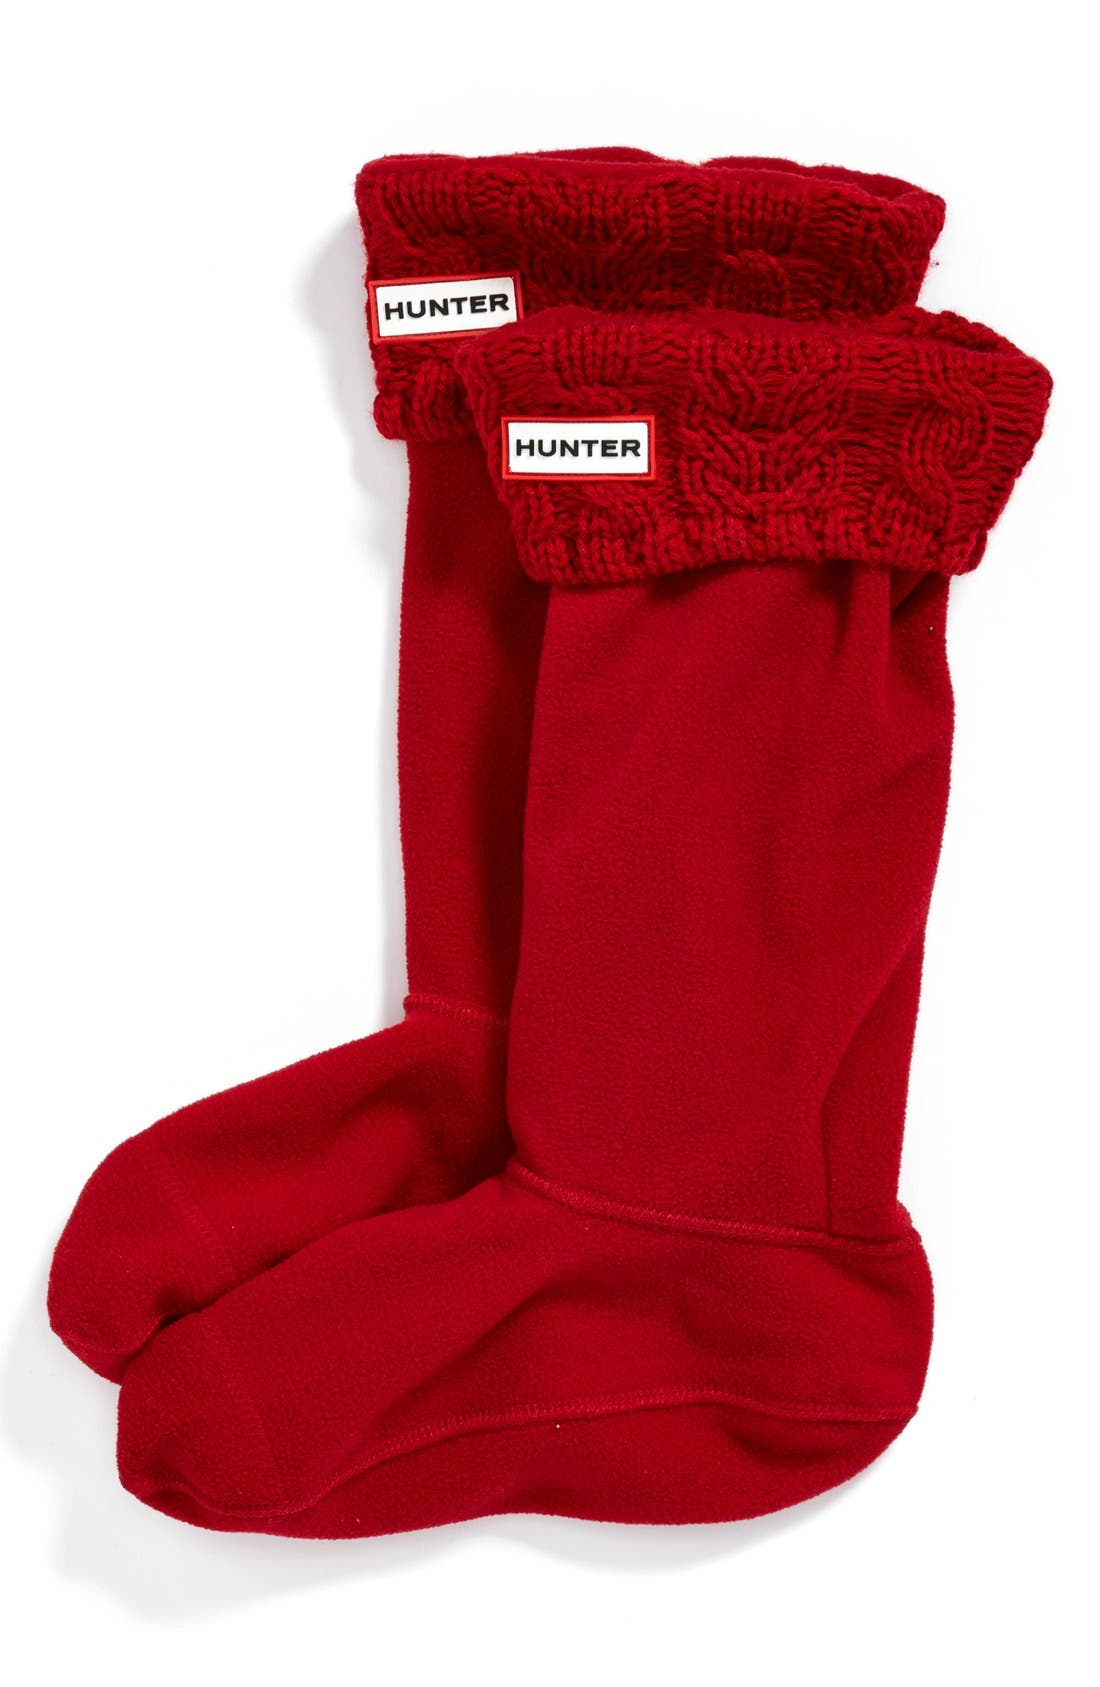 Alternate Image 1 Selected - Hunter Tall Cable Knit Cuff Welly Socks (Women)